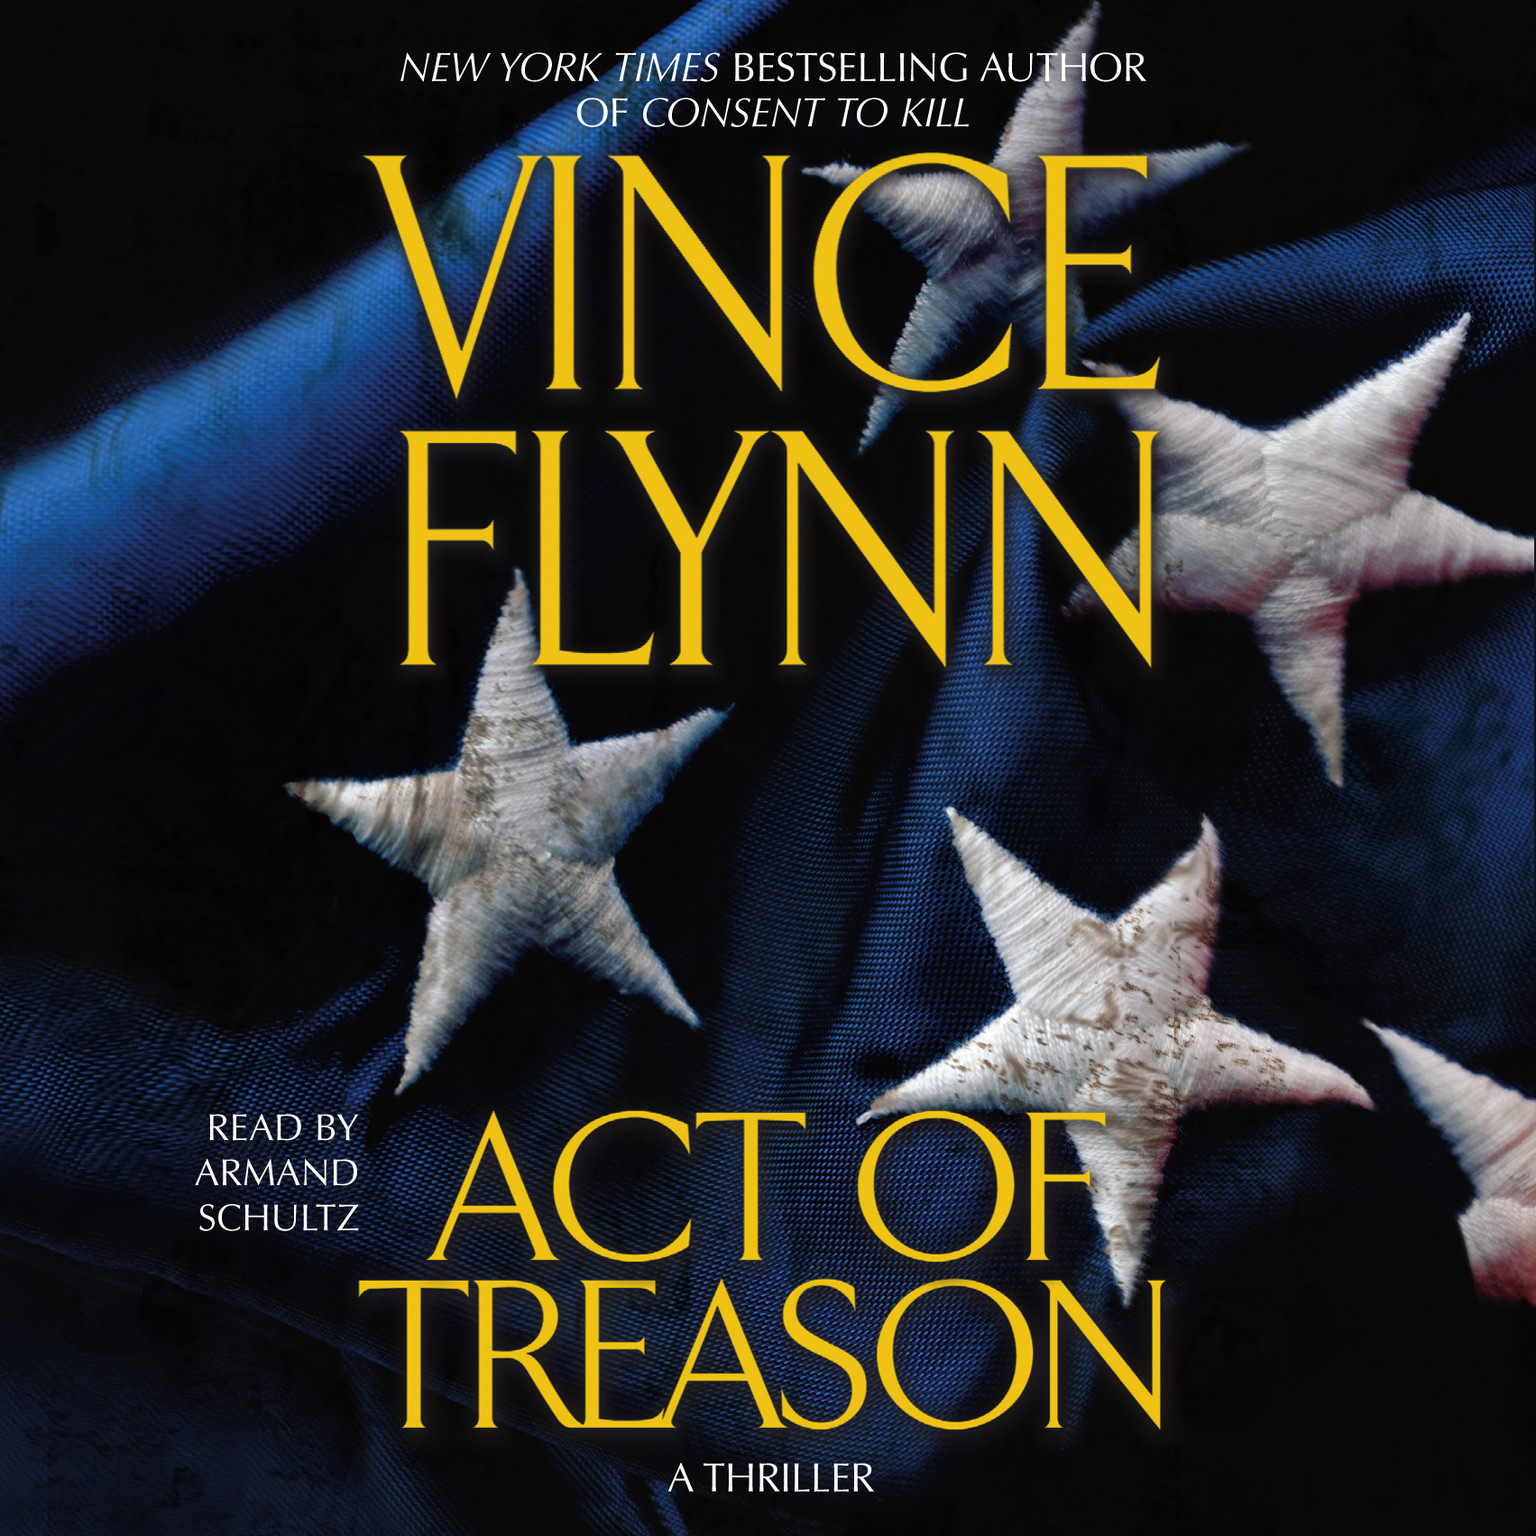 Printable Act of Treason Audiobook Cover Art